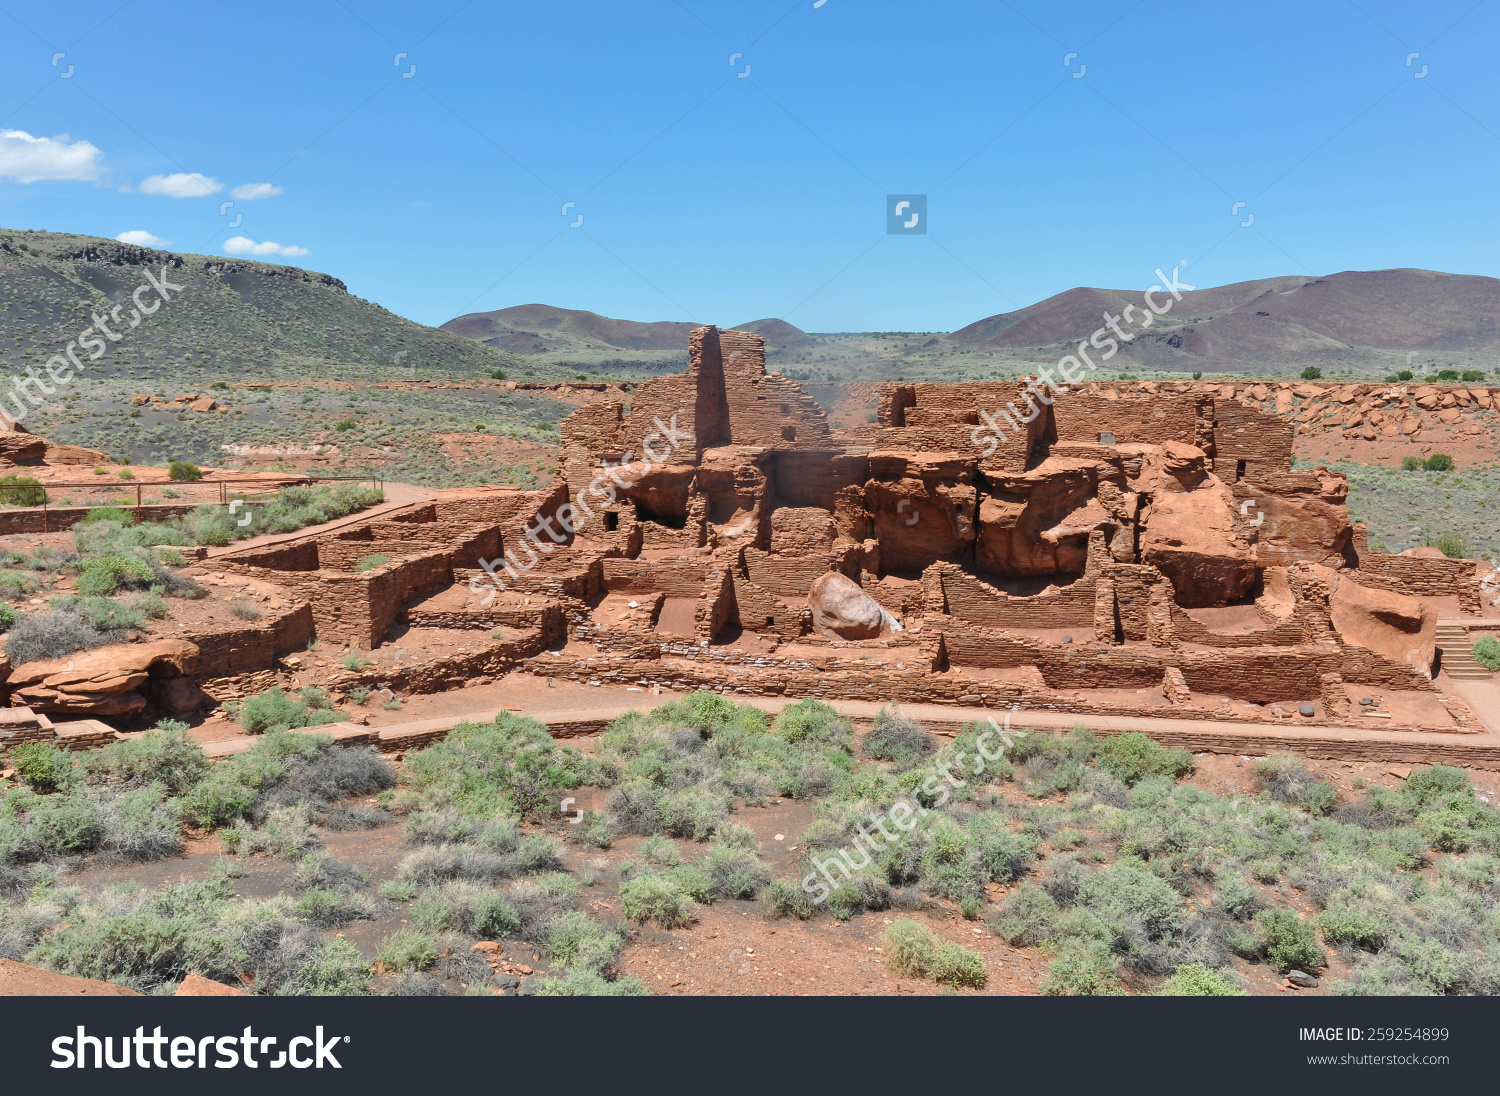 Ancient Pueblo Ruins Sunset Crater Volcano Stock Photo 259254899.